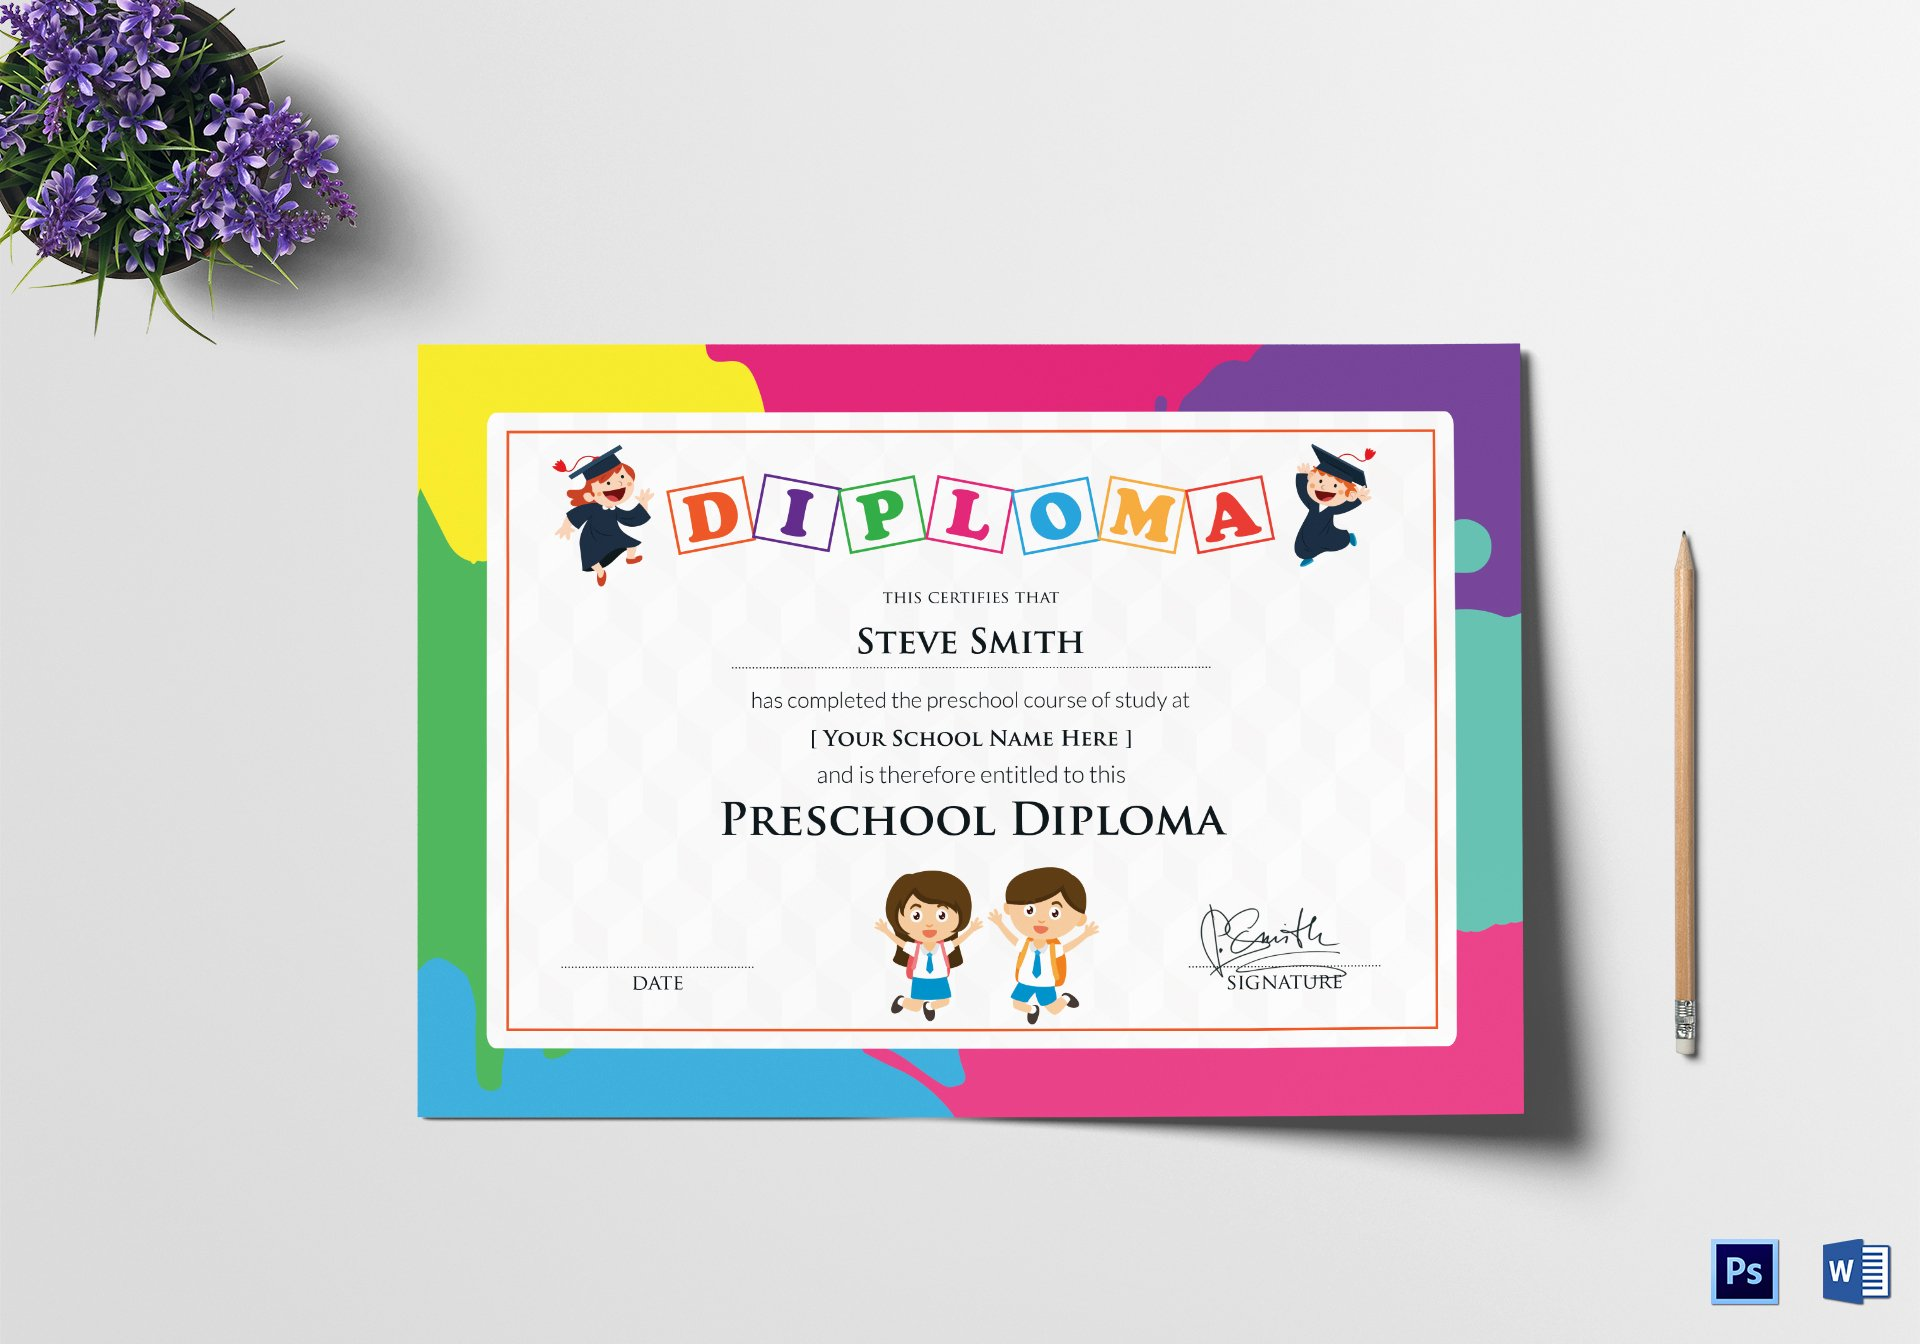 Preschool Graduation Certificate Templates Free Luxury Preschool Diploma Certificate Design Template In Psd Word